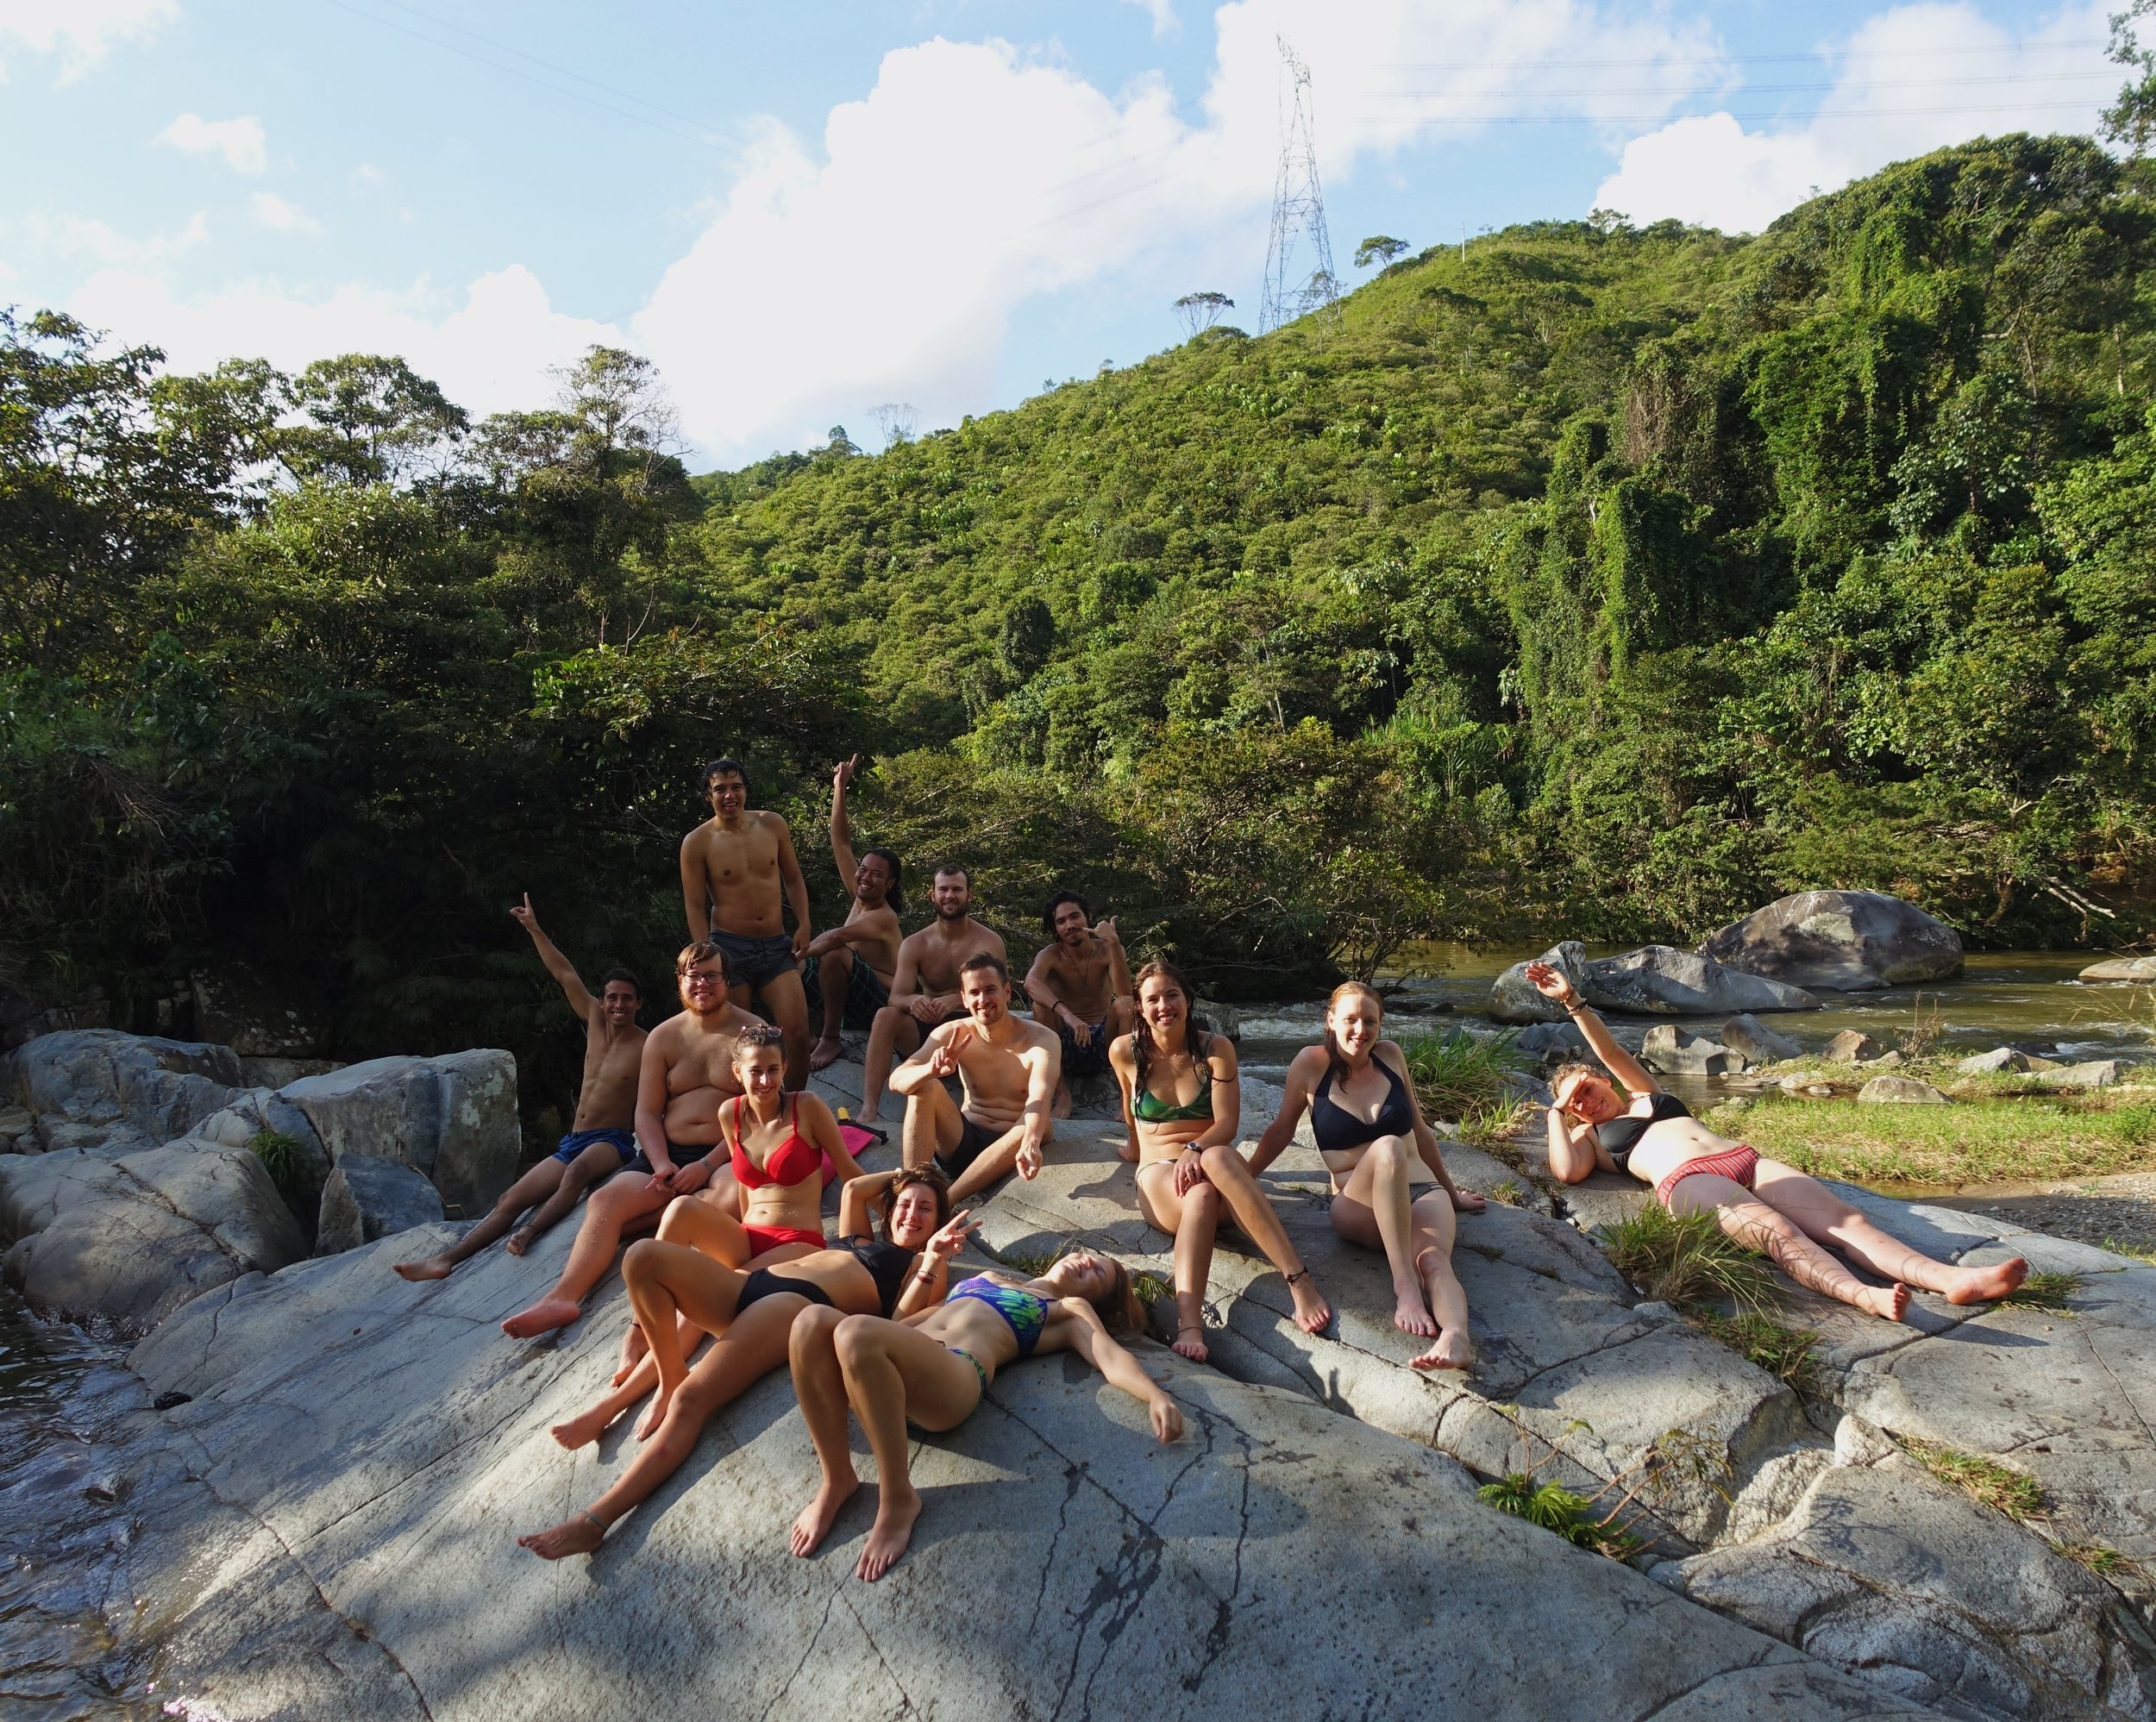 Adventures in the nature surrounding San Carlos, Colombia